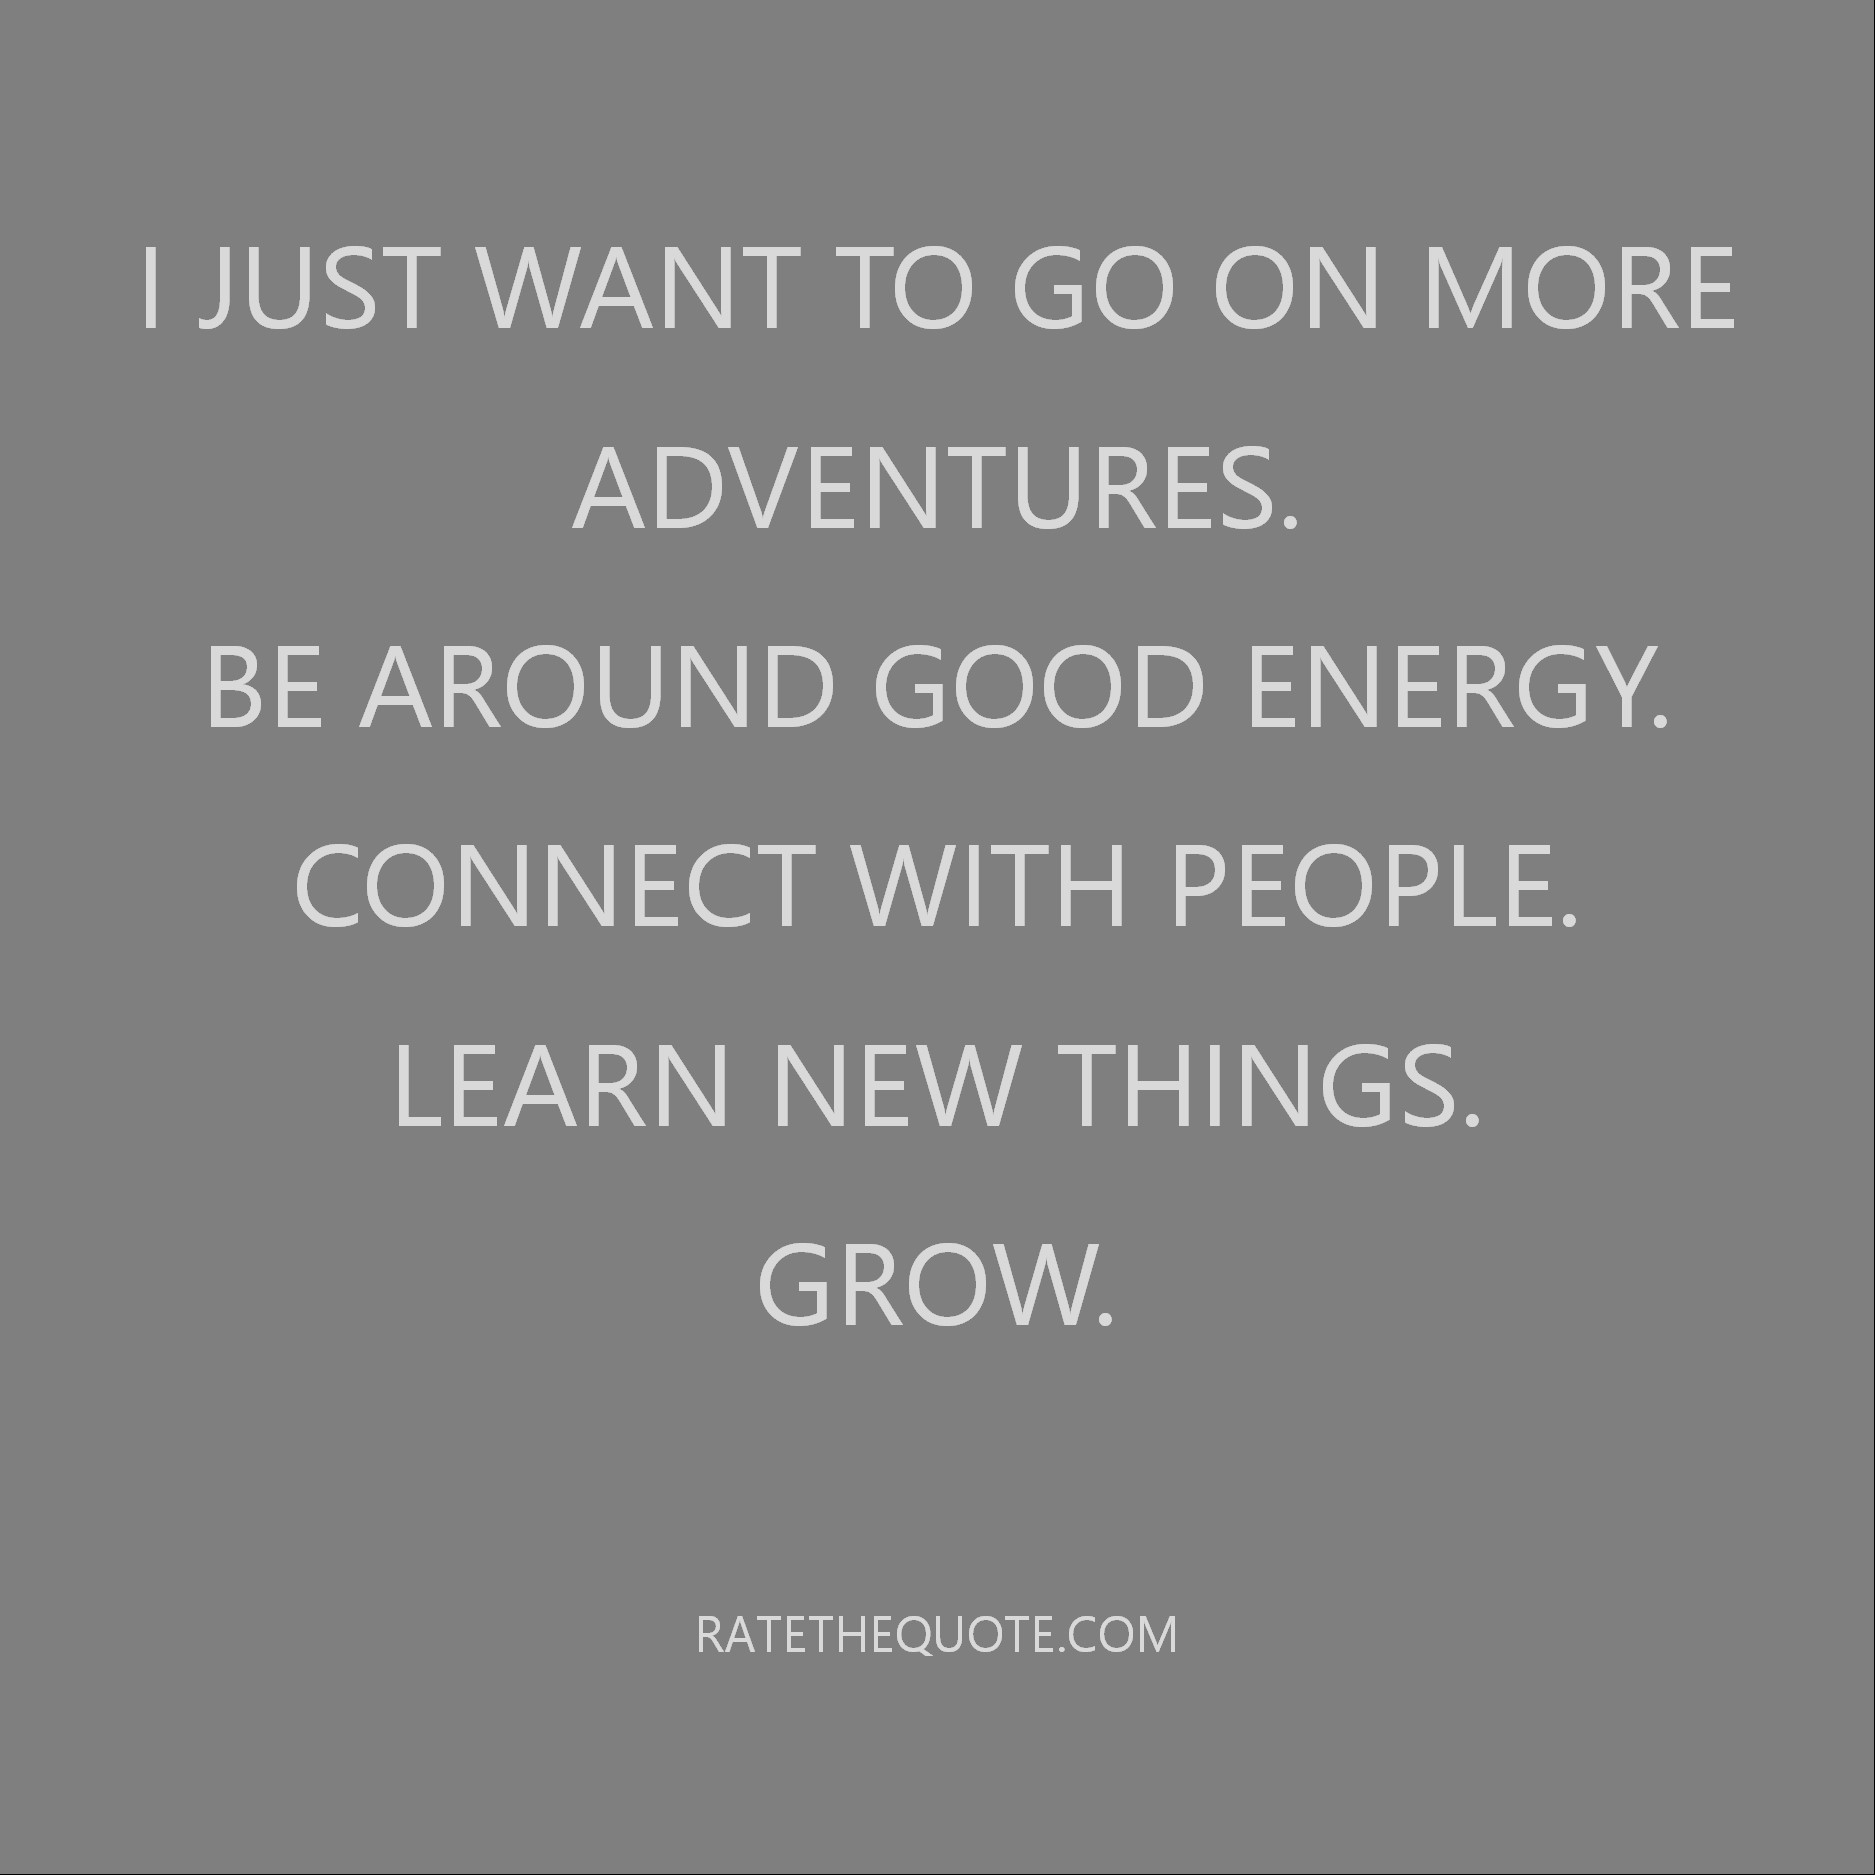 I just want to go on more adventures. Be around good energy. Connect with people. Learn new things. Grow.